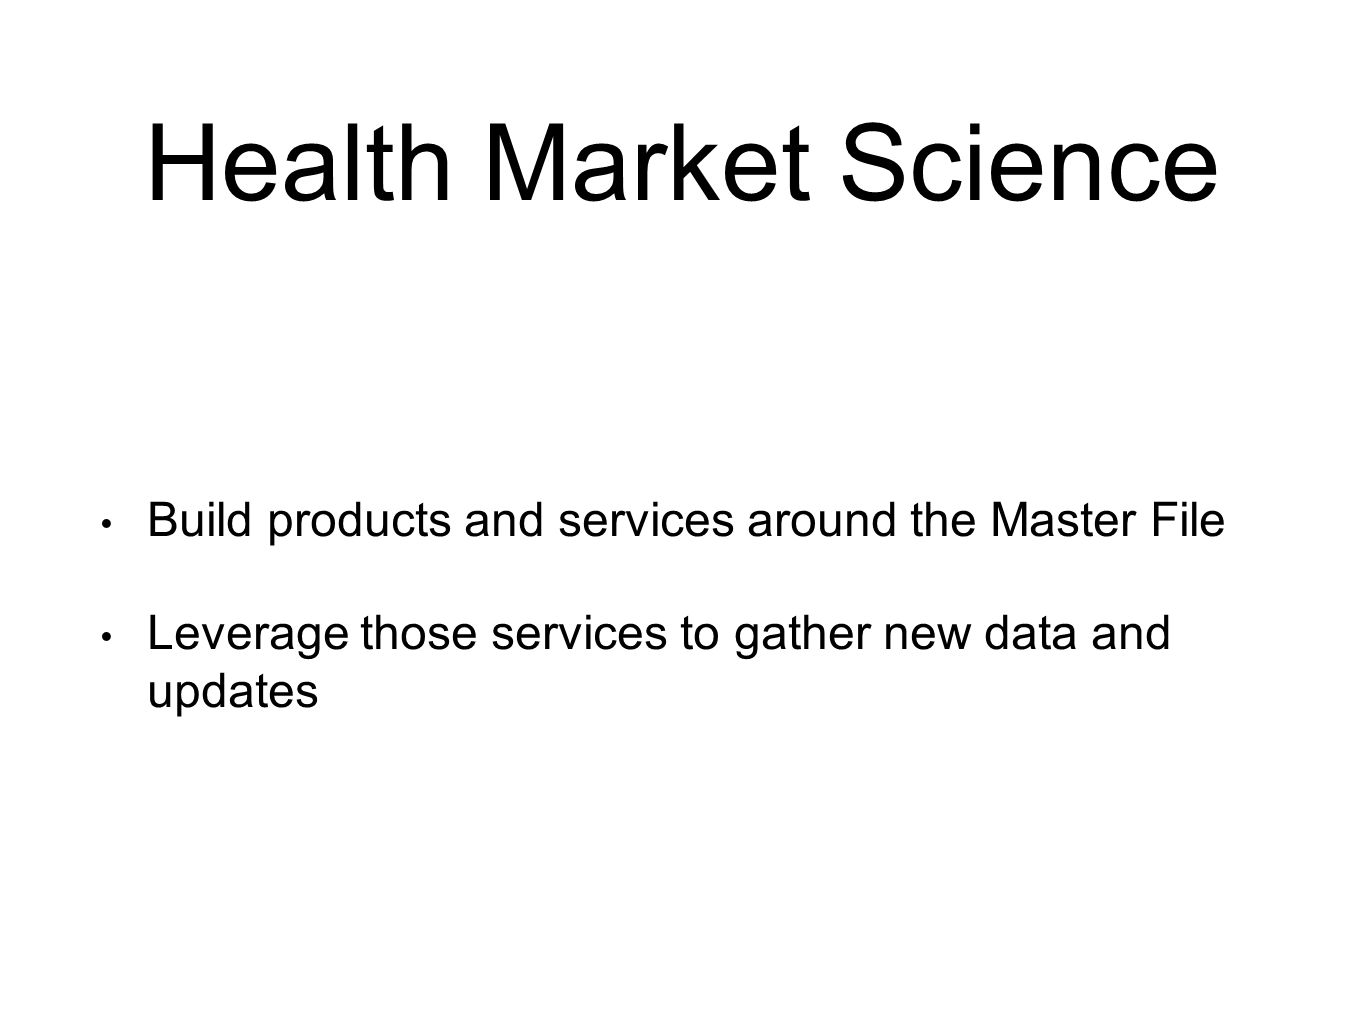 Health Market Science Build products and services around the Master File Leverage those services to gather new data and updates